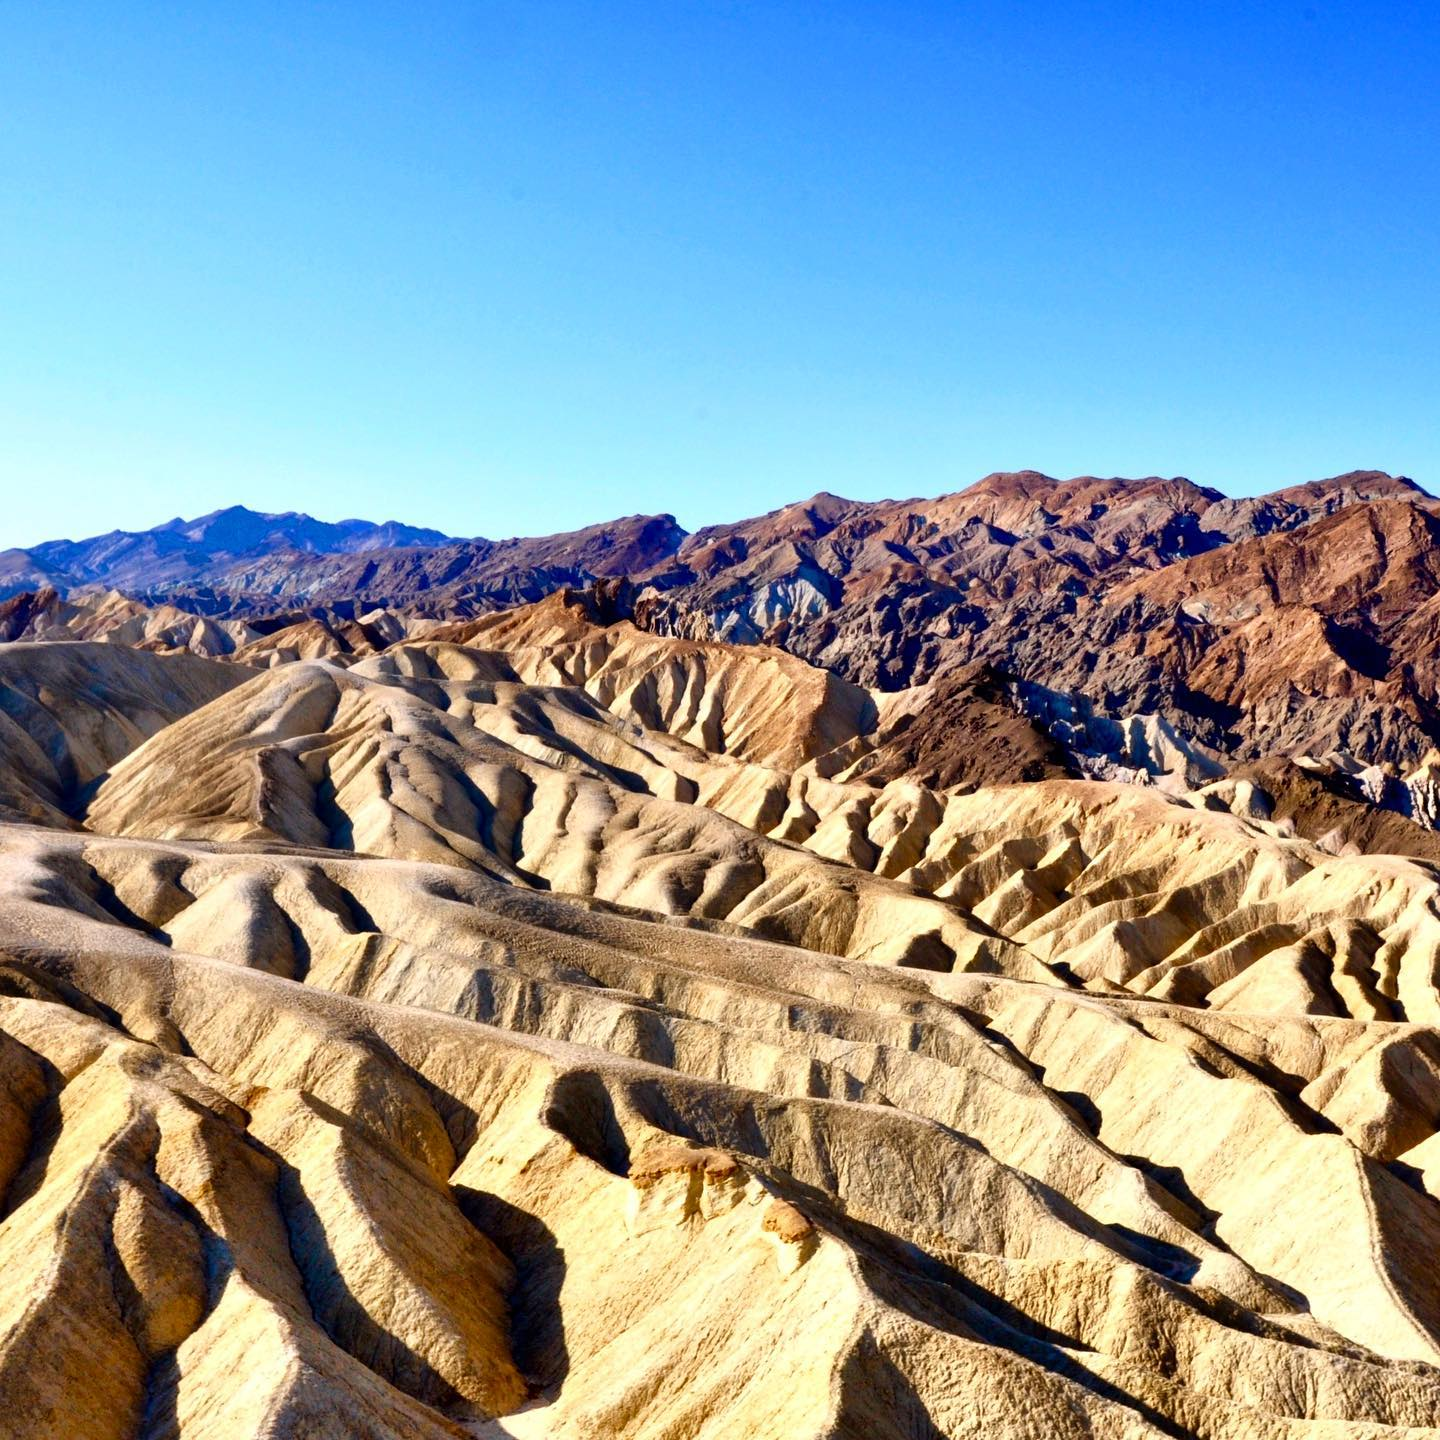 Zabriskie Point, Death Valley Nationalpark #roadtripusa🇺🇸 #usatravels #usa #roadtripusa🇺🇸 #roadtrip #california #deathvalleynationalpark #deathvalley #zabriskiepoint #travelphotography #mustsee #naturephotography #nature #naturelovers #landscapephotography #landscape #erosion #nationalparksusa #wanderlust #instatravel #america